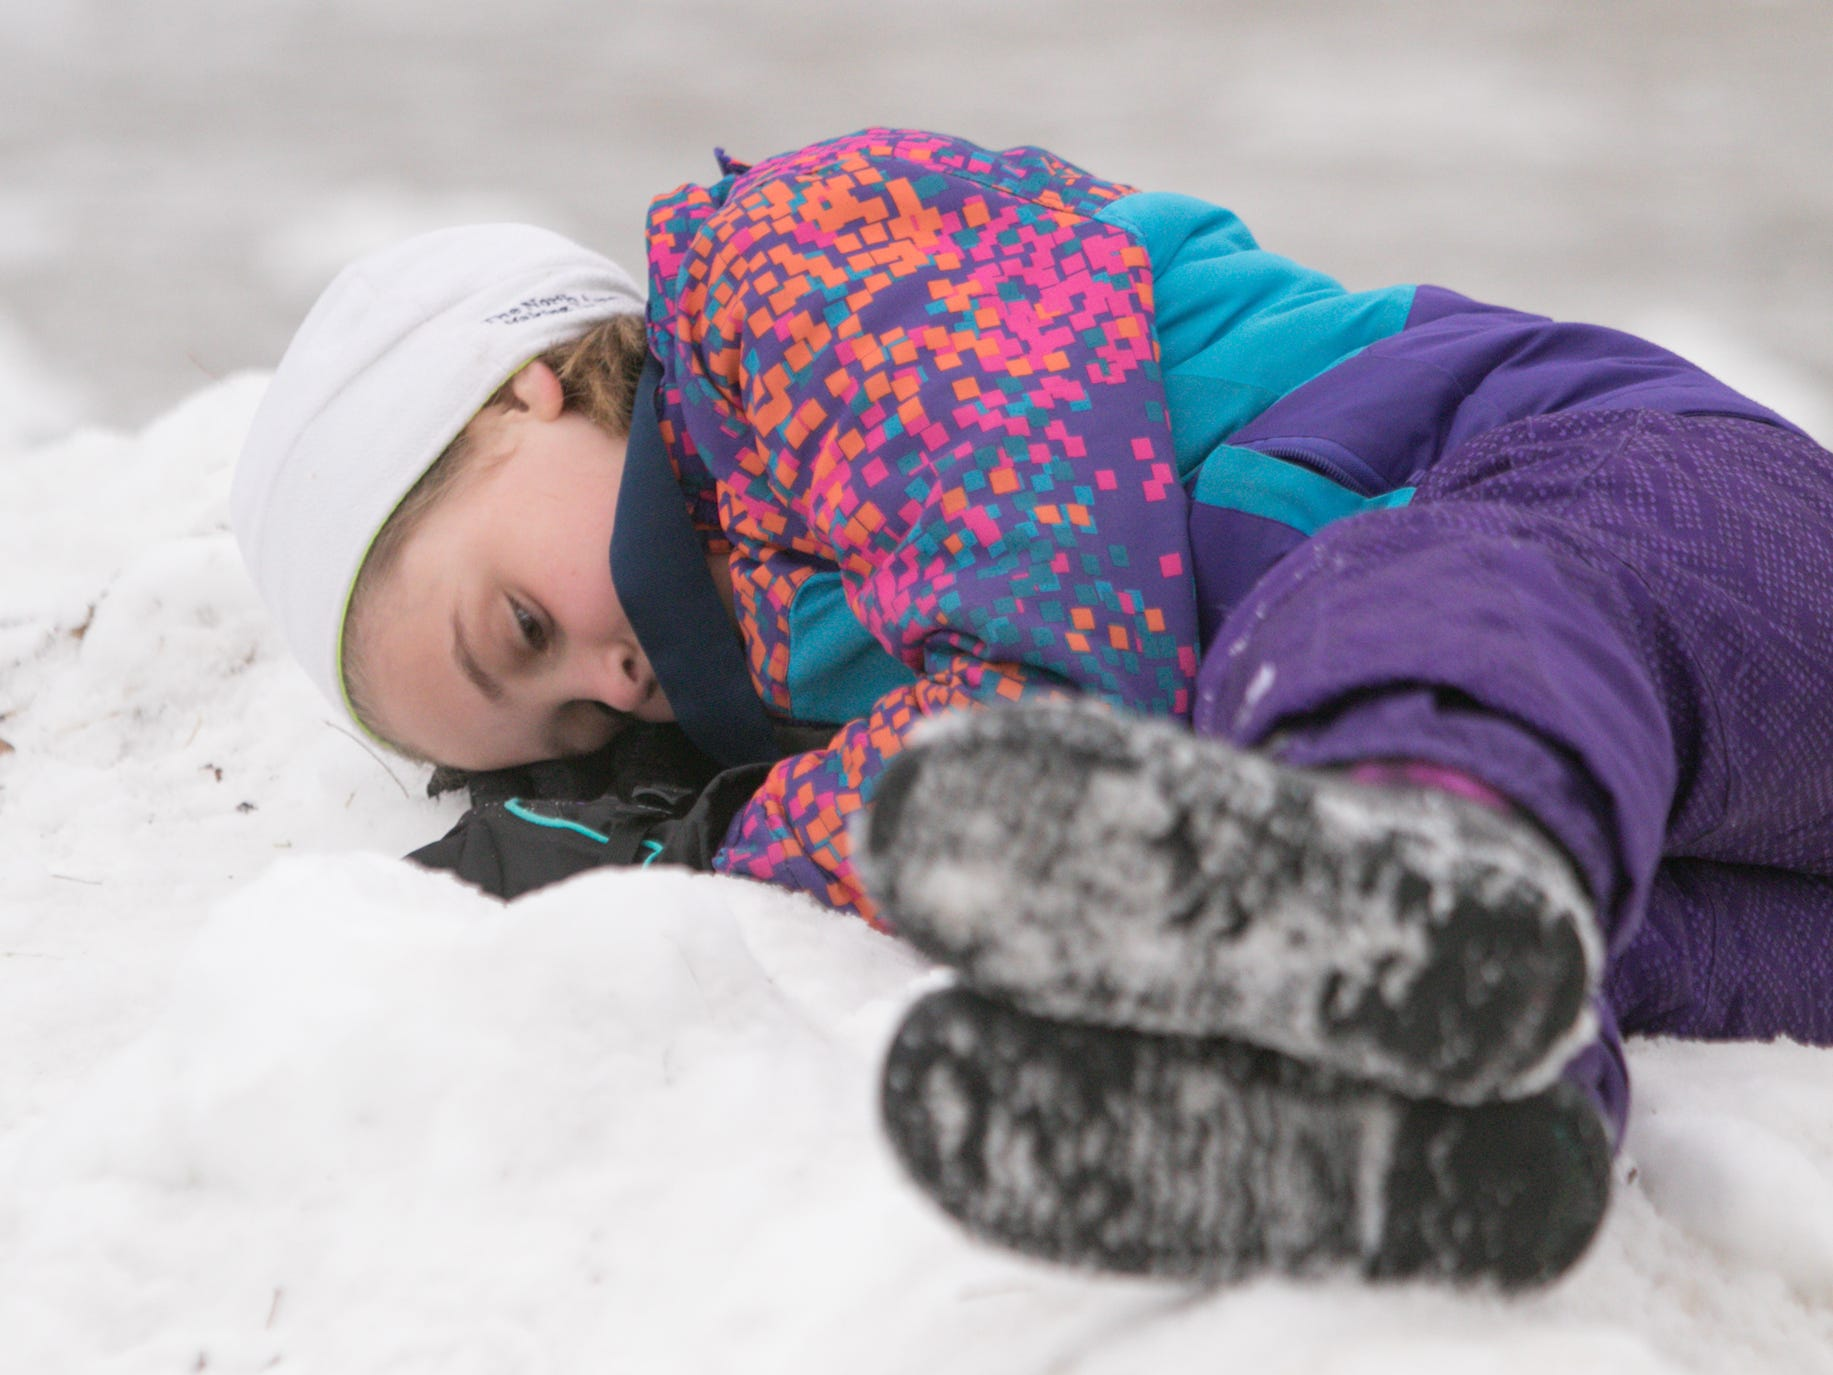 8-year-old Logan Anderson of Grand Rapids rests on a hill of man-made snow on the side of the race course, having participated in the Frosty Ski Fest kids' race Saturday, Jan. 12, 2019.